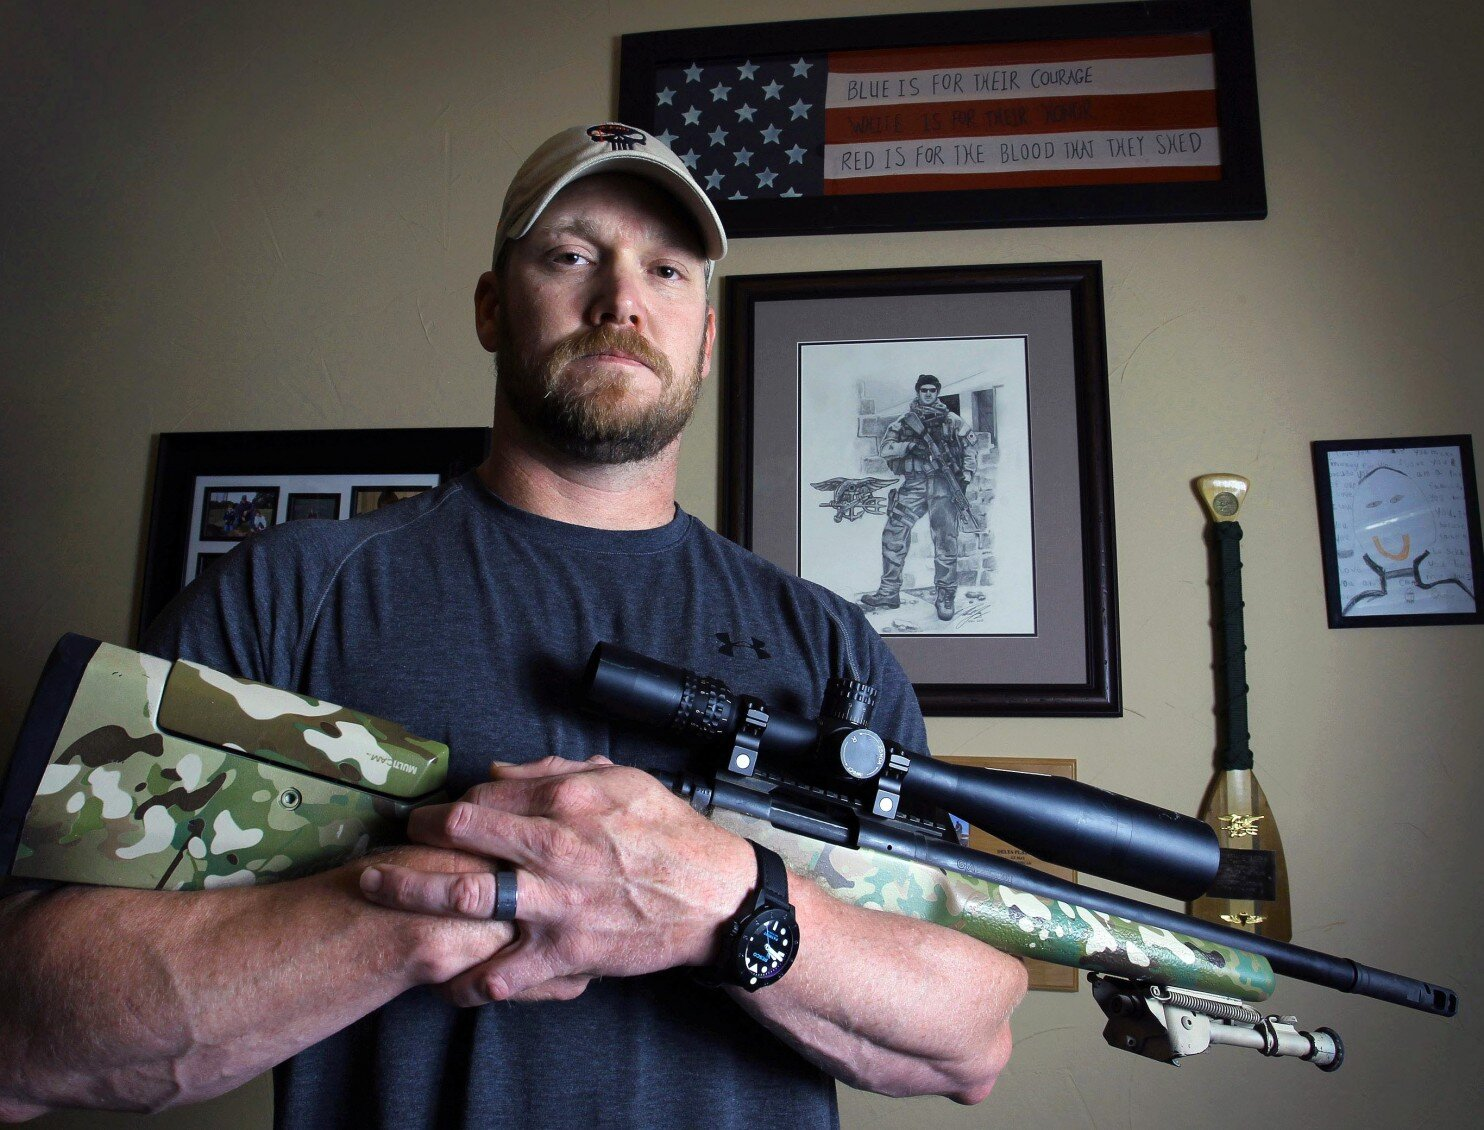 """Christopher Scott """"Chris"""" Kyle (April 8, 1974 − February 2, 2013) was a United States Navy SEAL and the most lethal sniper in U.S. military history. Kyle served four tours in the Iraq War and was awarded several commendations for acts of heroism and meritorious service in combat. He received two Silver Star Medals, five Bronze Star Medals, one Navy and Marine Corps Commendation Medal, two Navy and Marine Corps Achievement Medals and numerous other unit and personal awards. Kyle was honorably discharged from the U.S. Navy in 2009 and published his bestselling autobiography, American Sniper, in 2012. An eponymous film adaptation of Kyle's book, directed by Clint Eastwood, was released two years later. Chris was a devoted son, brother, husband and father in North Texas, as well as continuing his efforts to helping Veterans re-acclimate to civilian life and combat stress carried home. Kyle was shot dead at a shooting range near Chalk Mountain, Texas. His friend, Chad Littlefield, age 35, was also killed."""